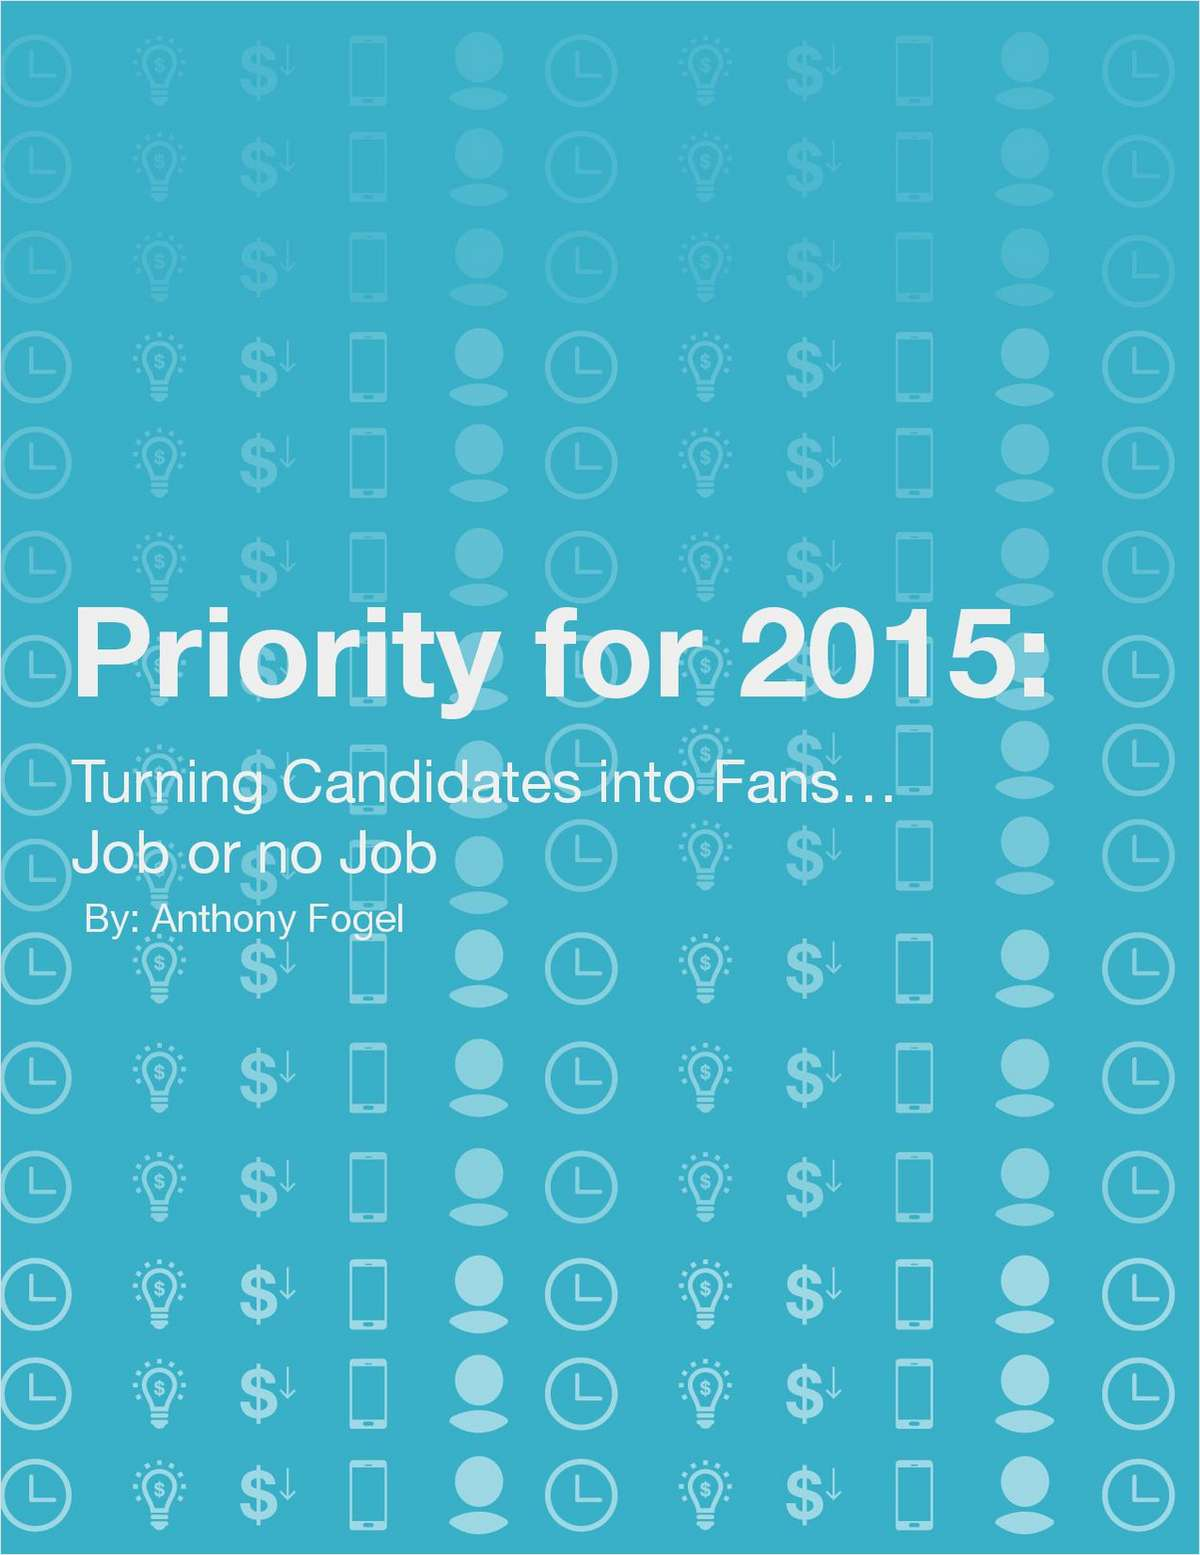 Turning Candidates into Fans, Job Or No Job.